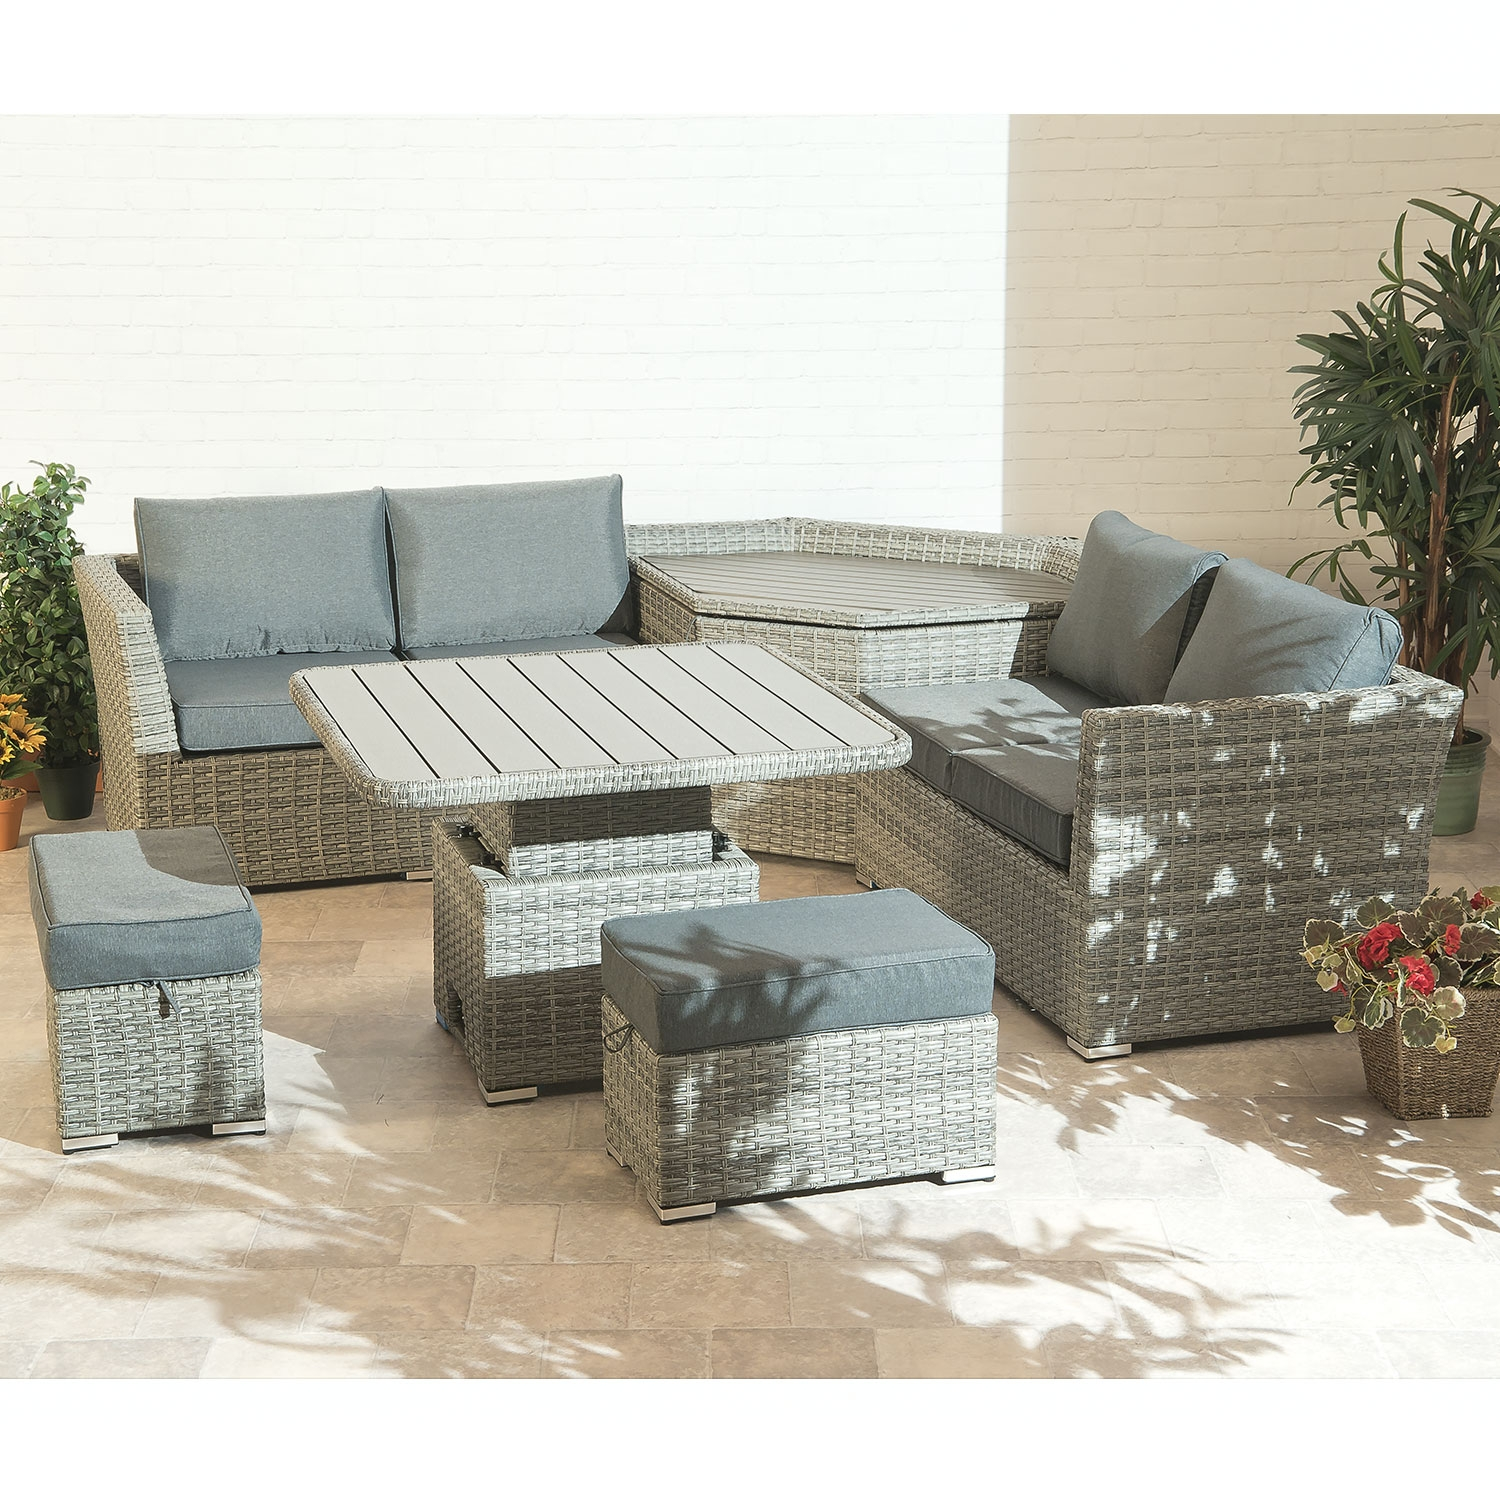 Better Homes And Gardens Replacement Cushions Azalea Ridge, Cambridge Garden Furniture Corner Sofa Patio Set Collection With Storage And Adjustable Table